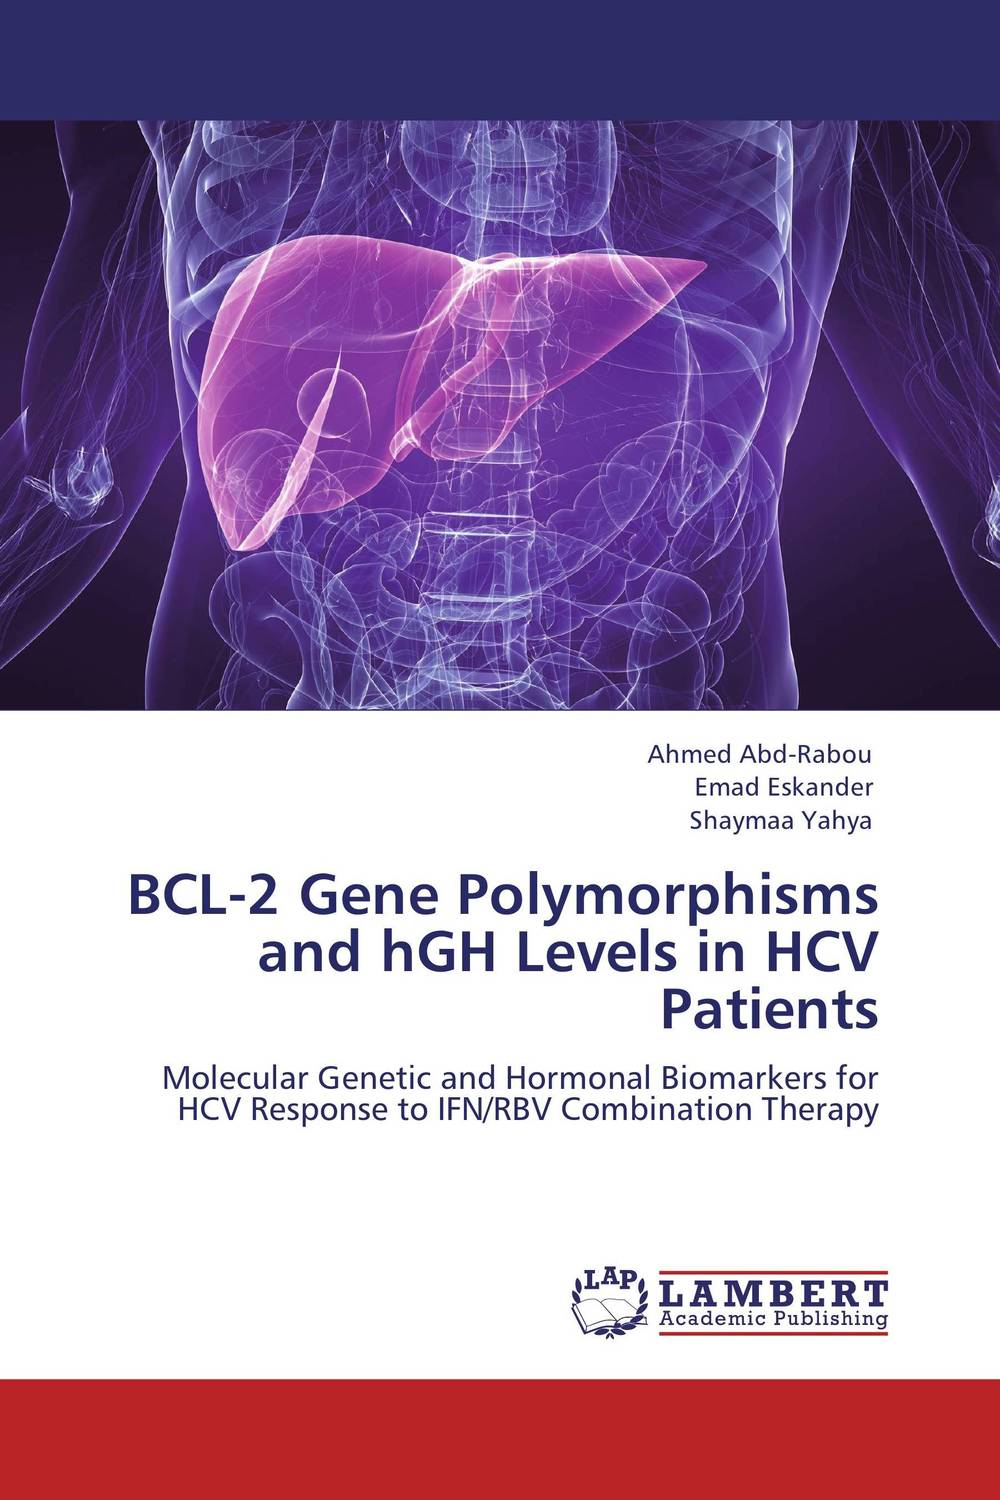 BCL-2 Gene Polymorphisms and hGH Levels in HCV Patients lmp 7 gene and response to ifn therapy in hcv infected patients